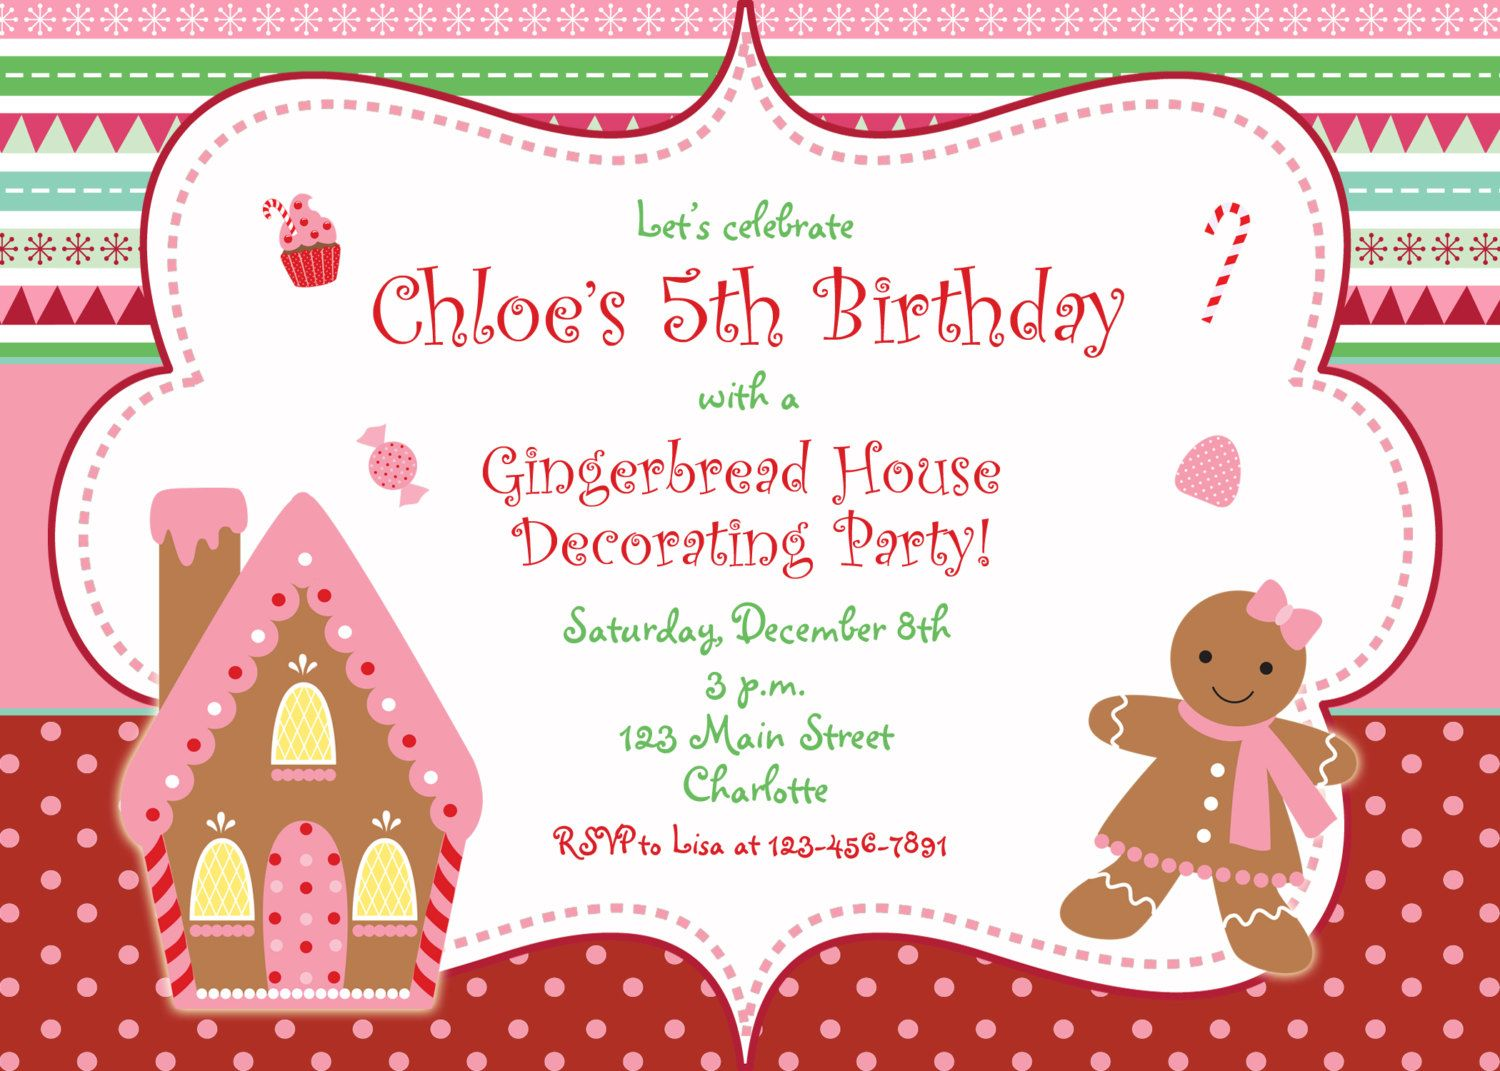 gingerb party invitation gingerb party gingerb house christmas party invitation christmas birthday party gingerb house candy